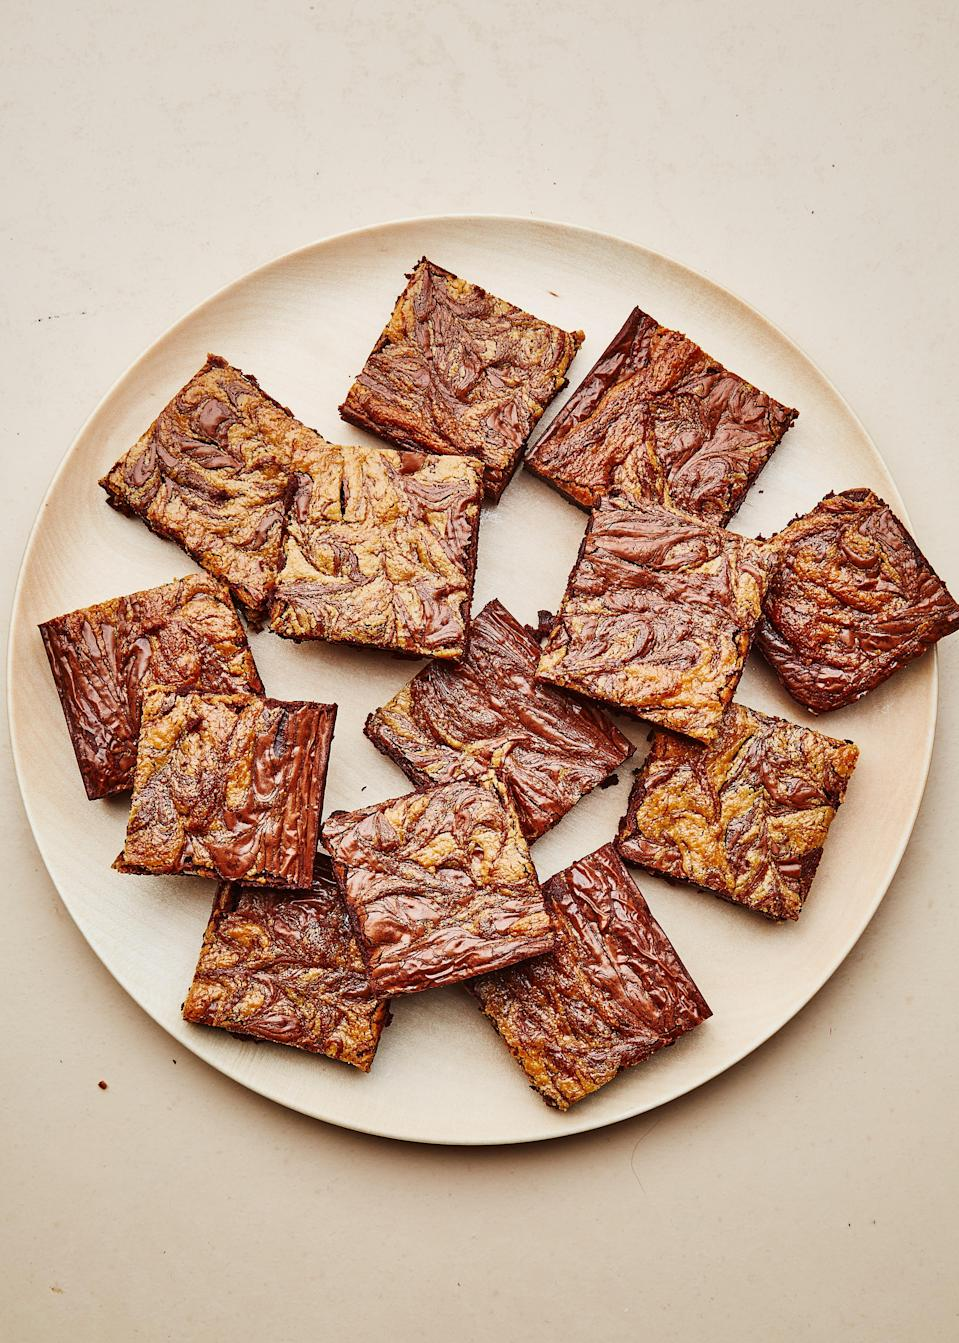 "David Lebovitz's timeless <a href=""http://www.davidlebovitz.com/gluten-free-brownies-recipe-chocolate/"" rel=""nofollow noopener"" target=""_blank"" data-ylk=""slk:gluten-free brownie recipe"" class=""link rapid-noclick-resp"">gluten-free brownie recipe</a> inspired our own GF take on classic fudgy brownies with a modern, sweet tahini swirl. <a href=""https://www.bonappetit.com/recipe/gluten-free-chocolate-tahini-brownies?mbid=synd_yahoo_rss"" rel=""nofollow noopener"" target=""_blank"" data-ylk=""slk:See recipe."" class=""link rapid-noclick-resp"">See recipe.</a>"